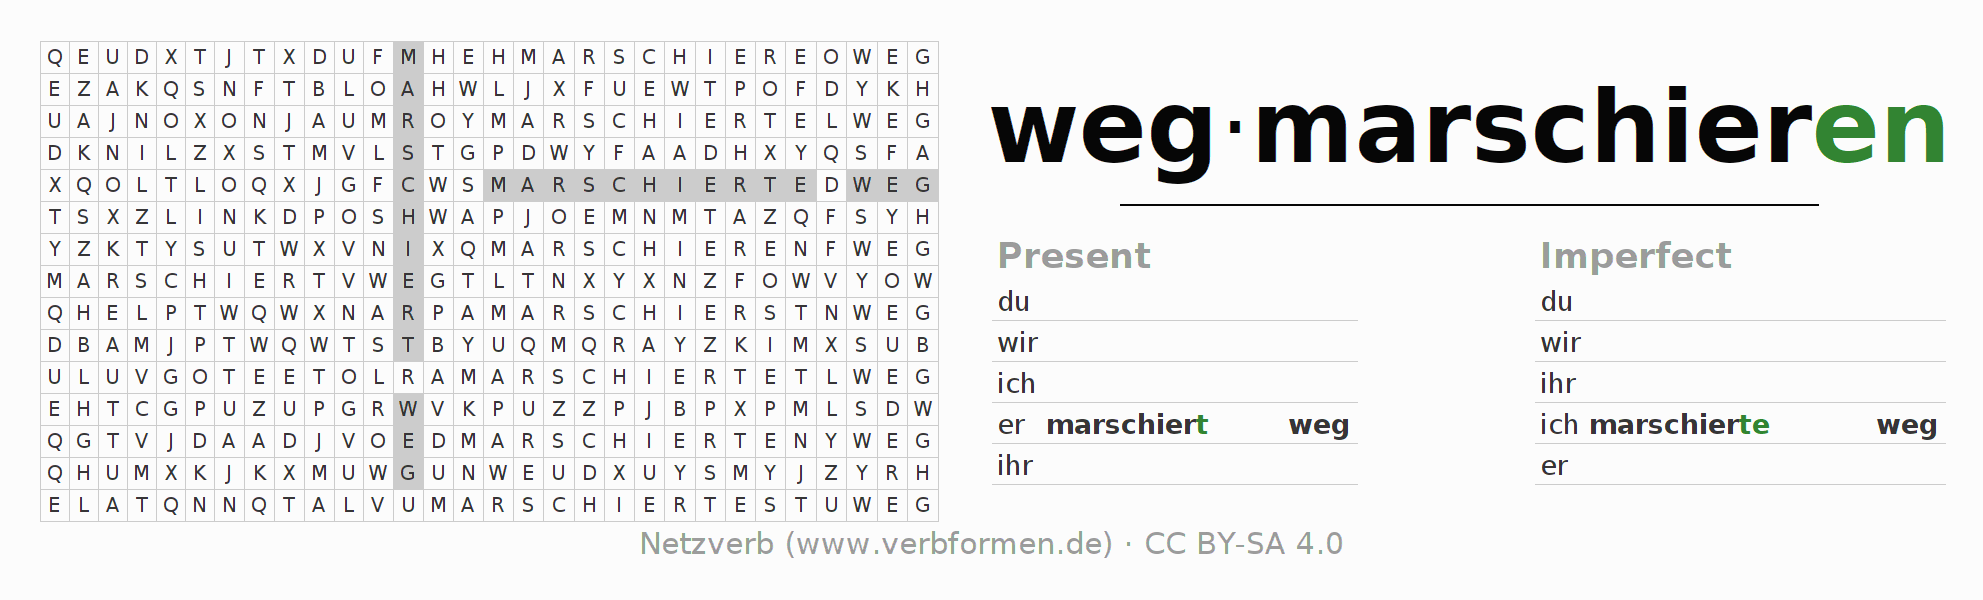 Word search puzzle for the conjugation of the verb wegmarschieren